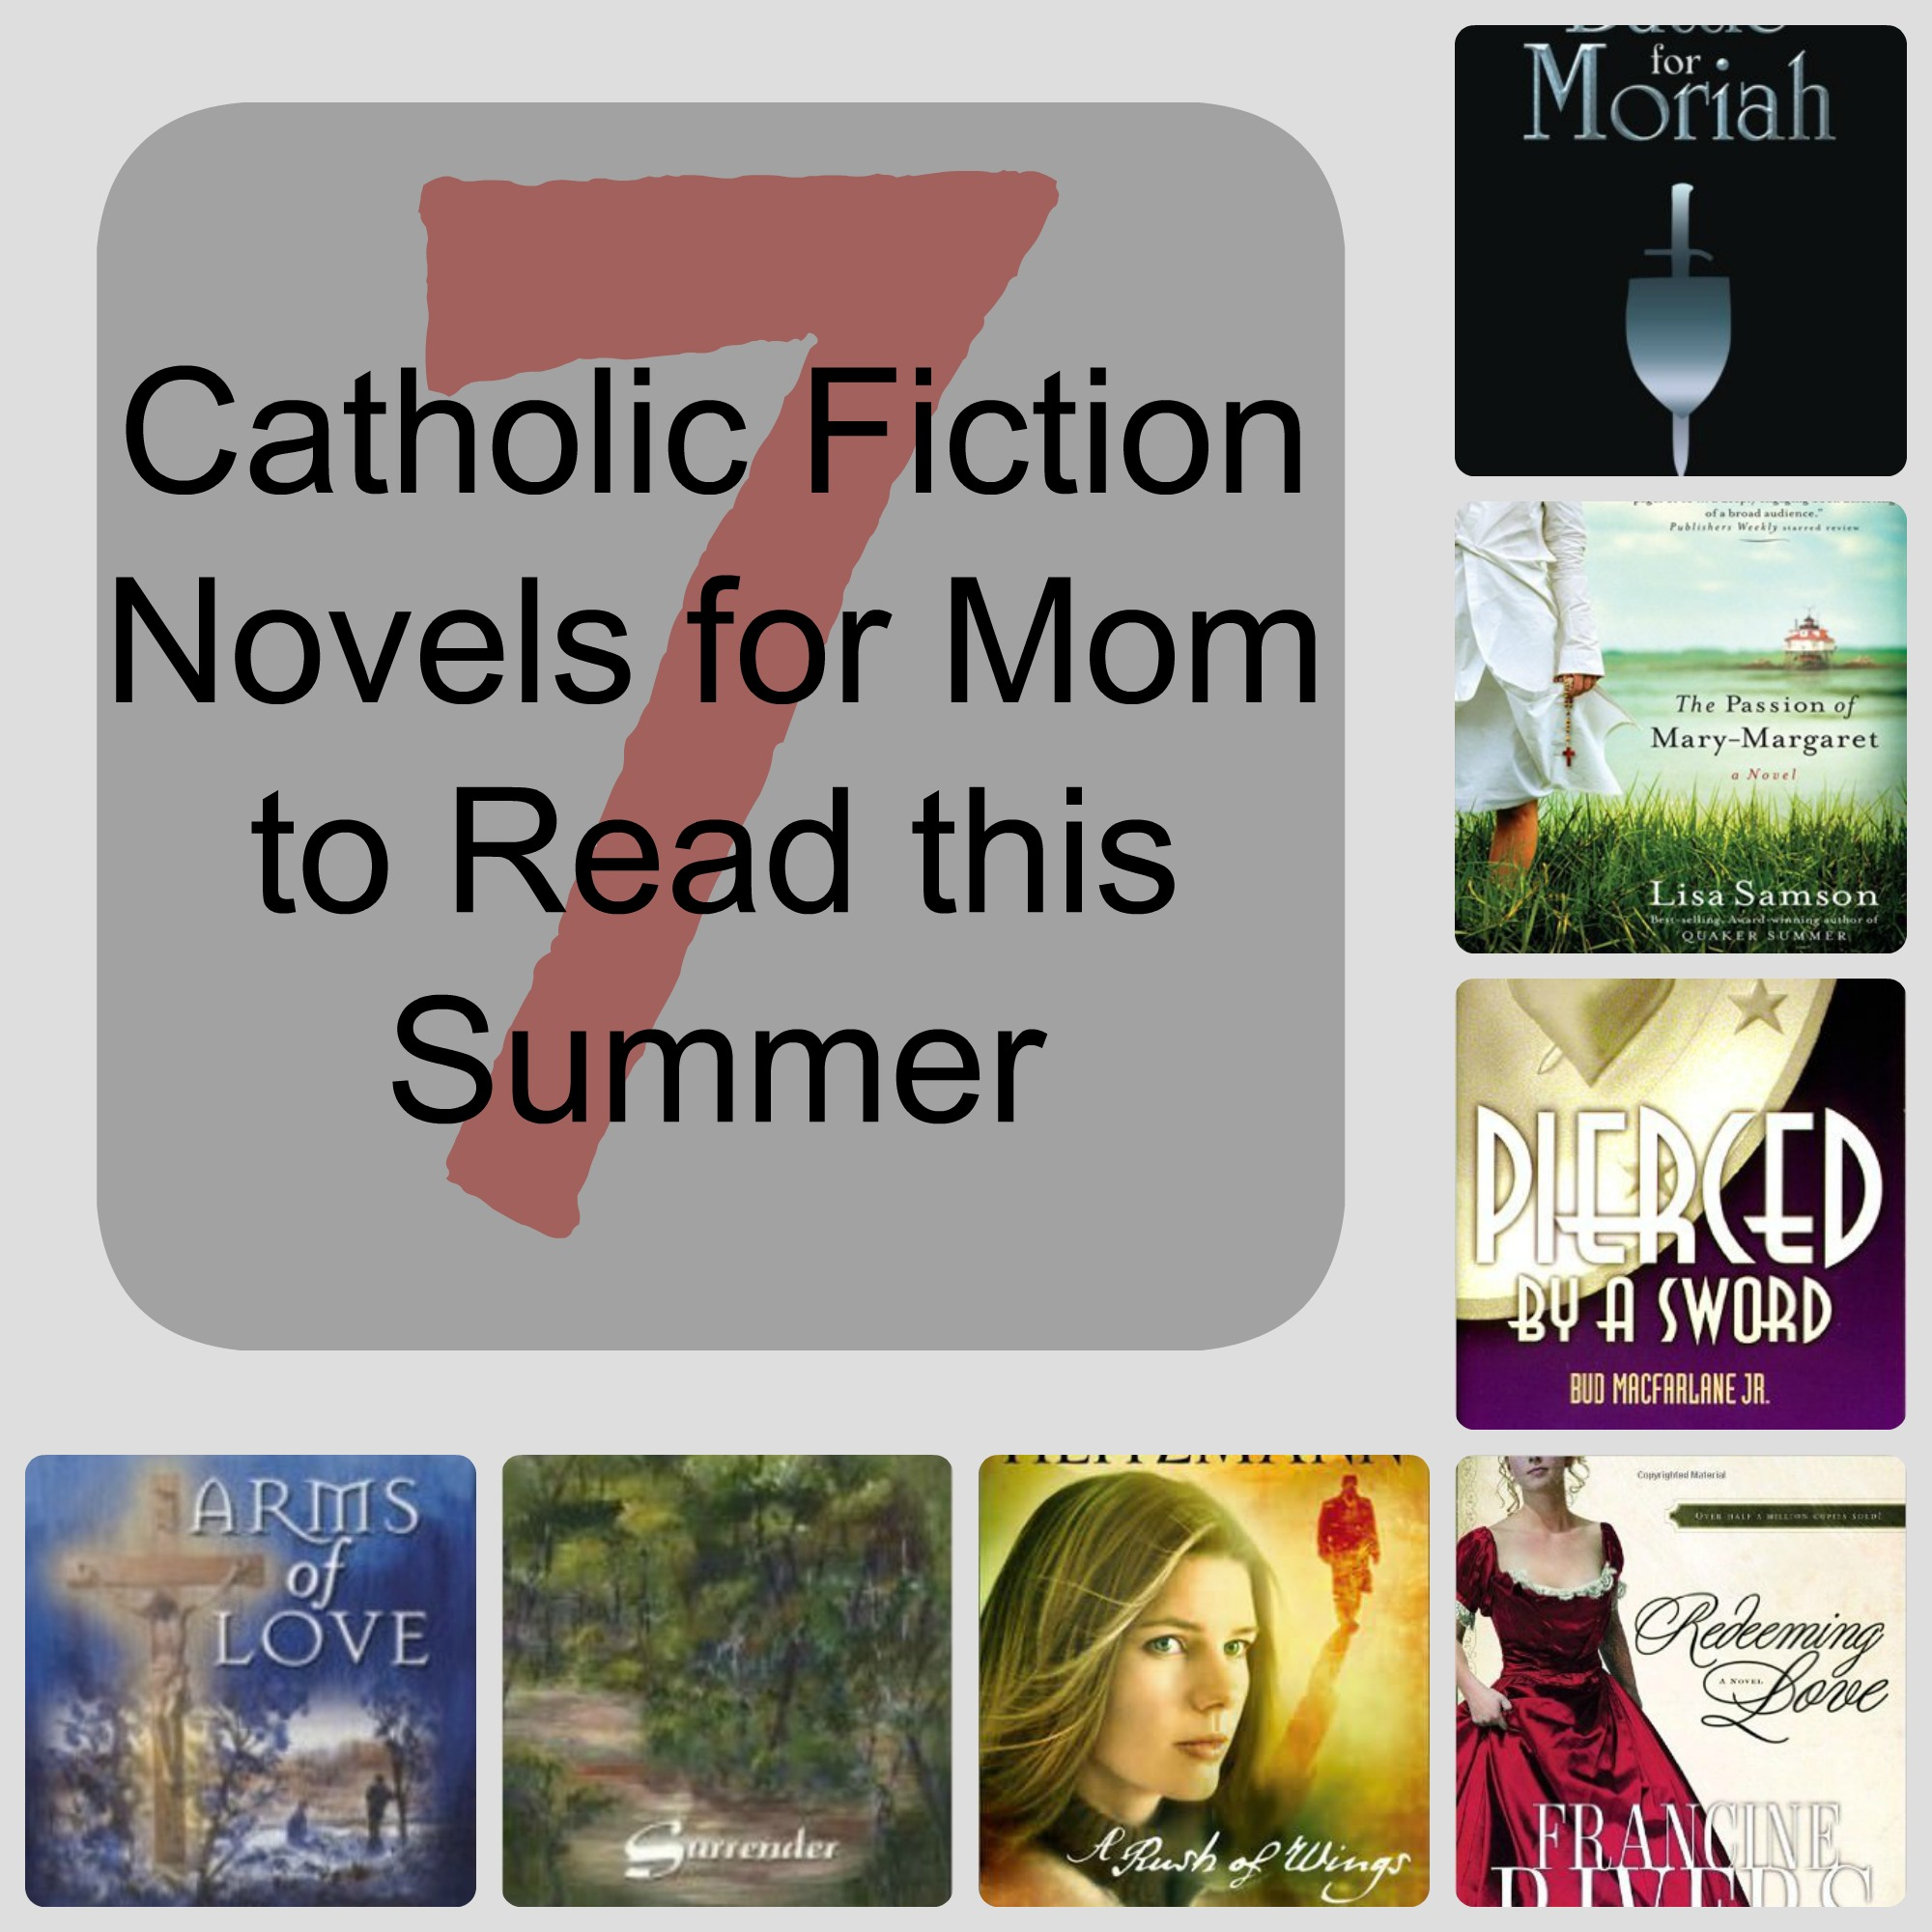 7 Catholic Fiction Novels for Mom to Read this Summer